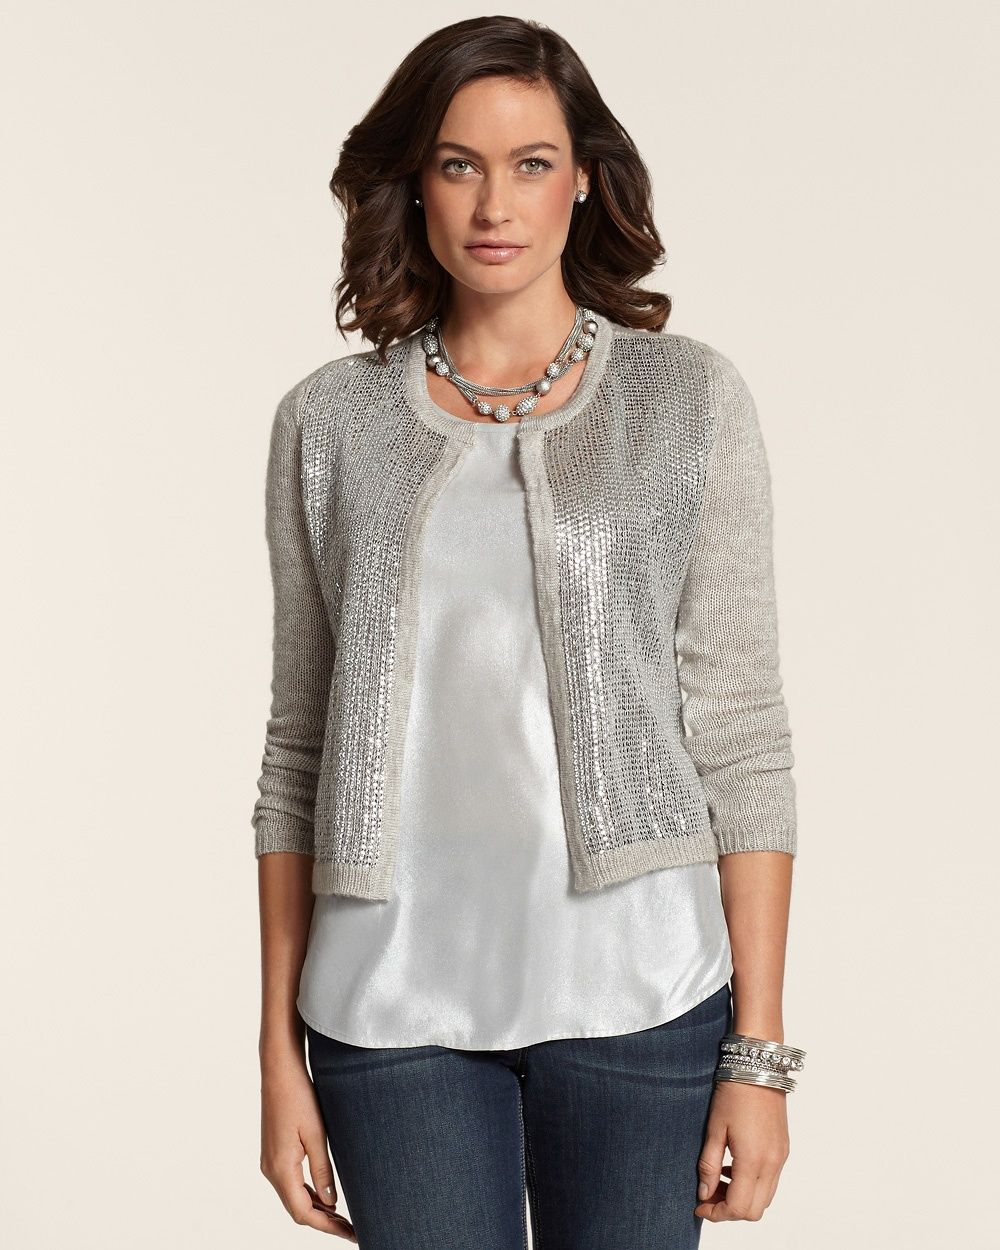 Chico's Women's Shae Sequin Cardigan, Heather Pale Taupe, Size: 3 ...